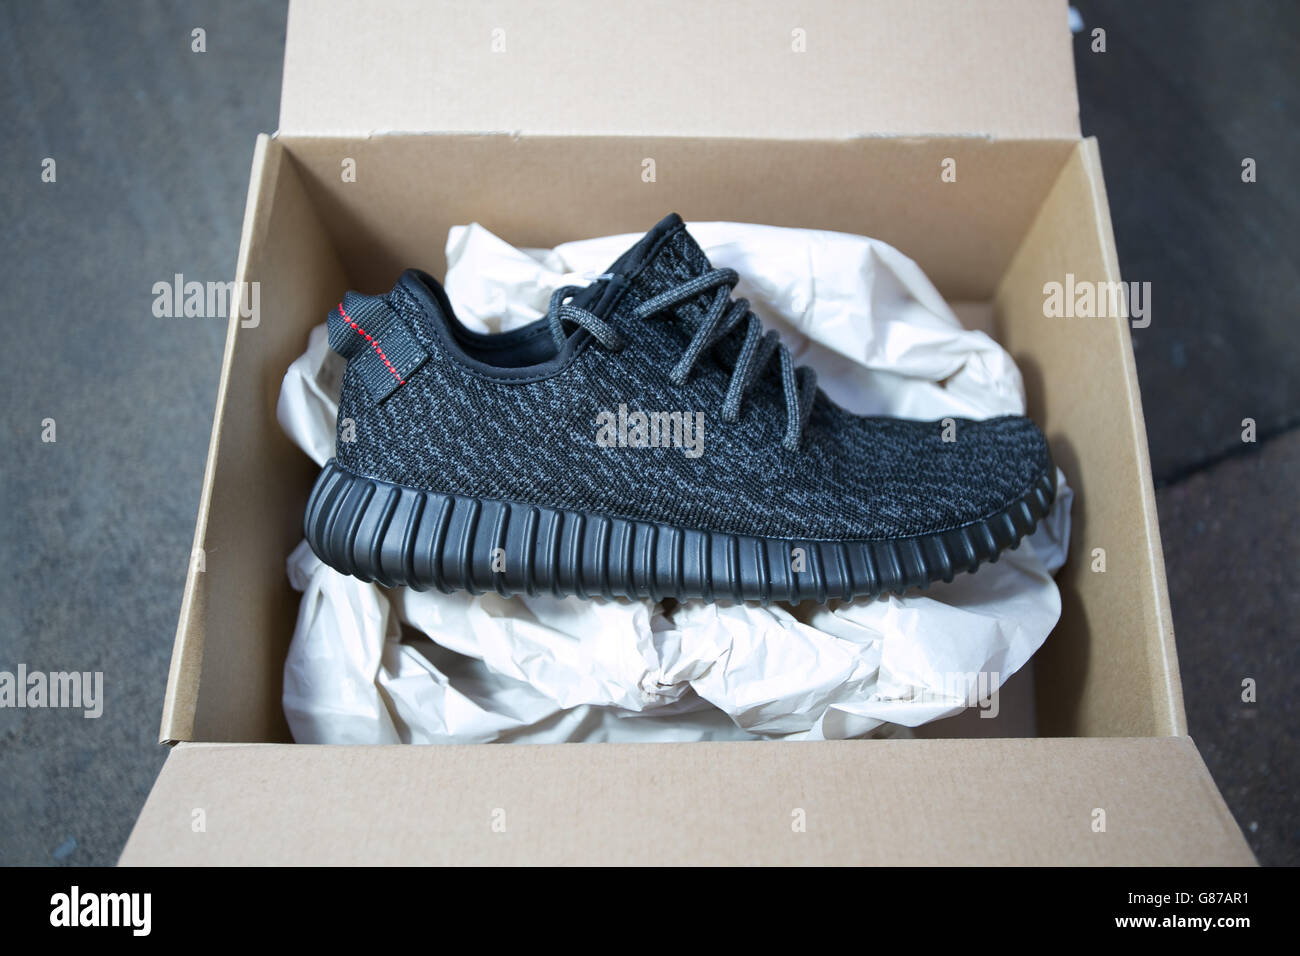 Adidas Yeezy Boost 350 trainers Stock